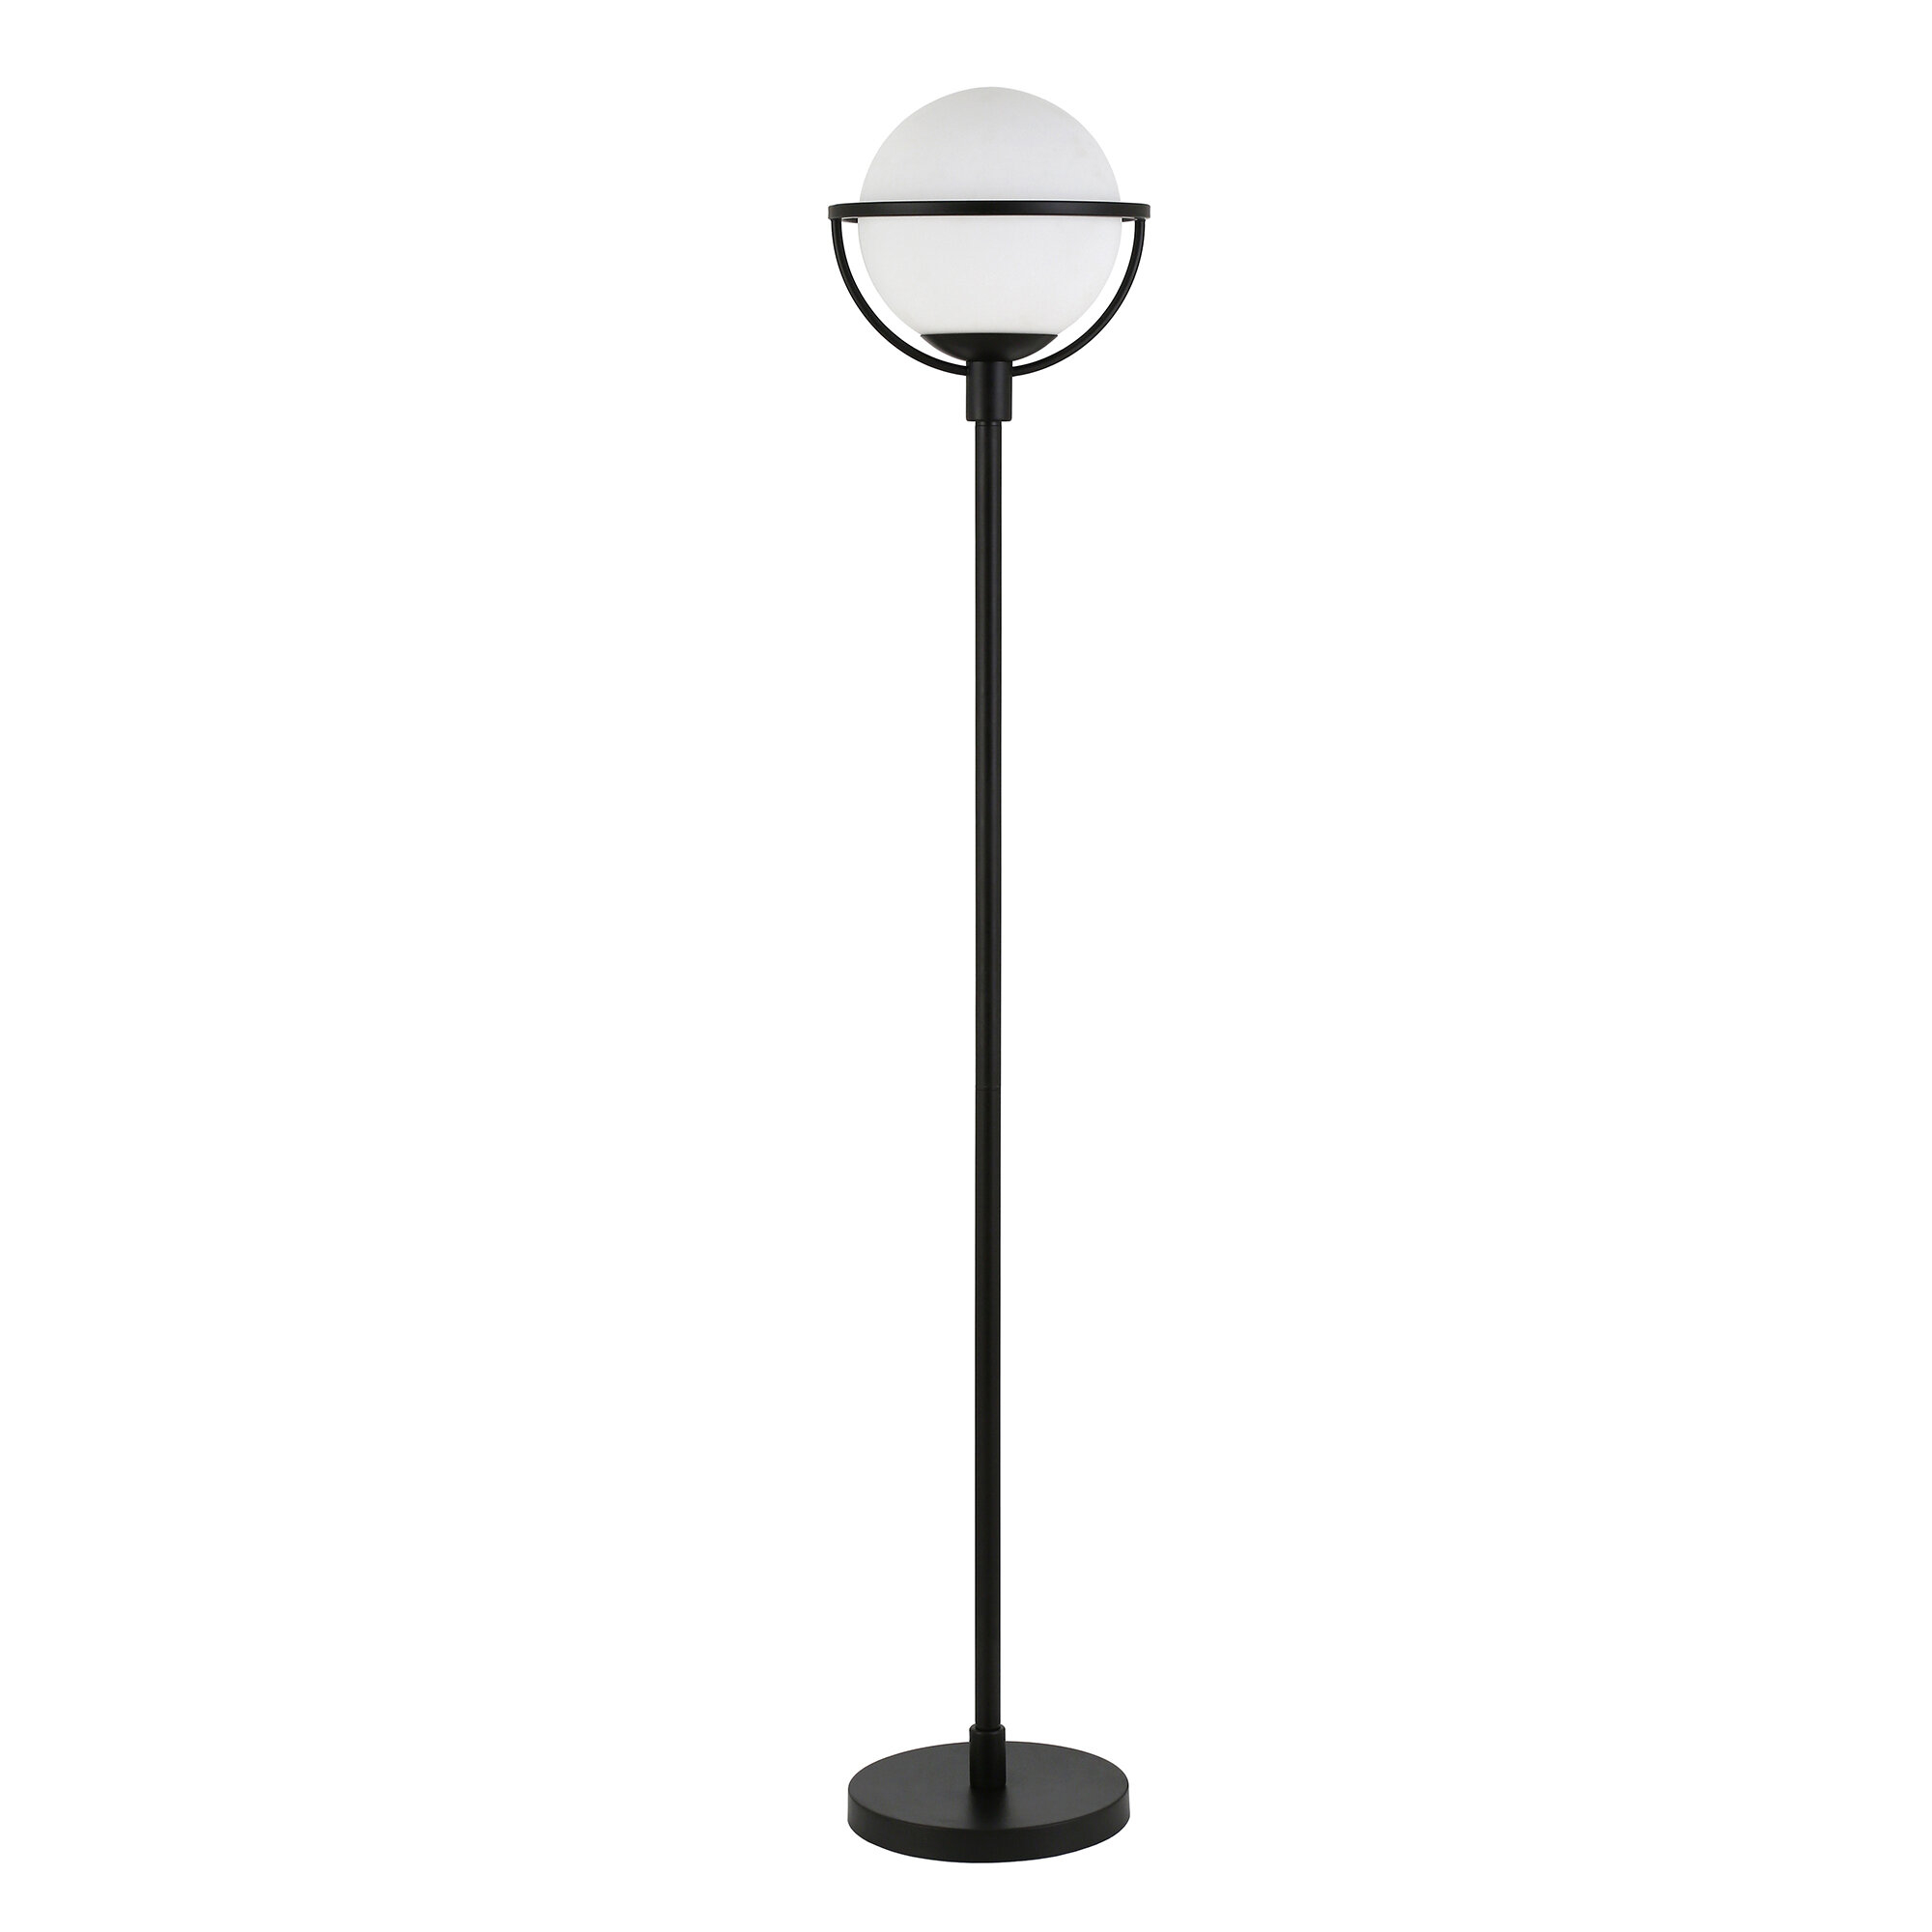 Pascale 69 Torchiere Floor Lamp with regard to measurements 2000 X 2000